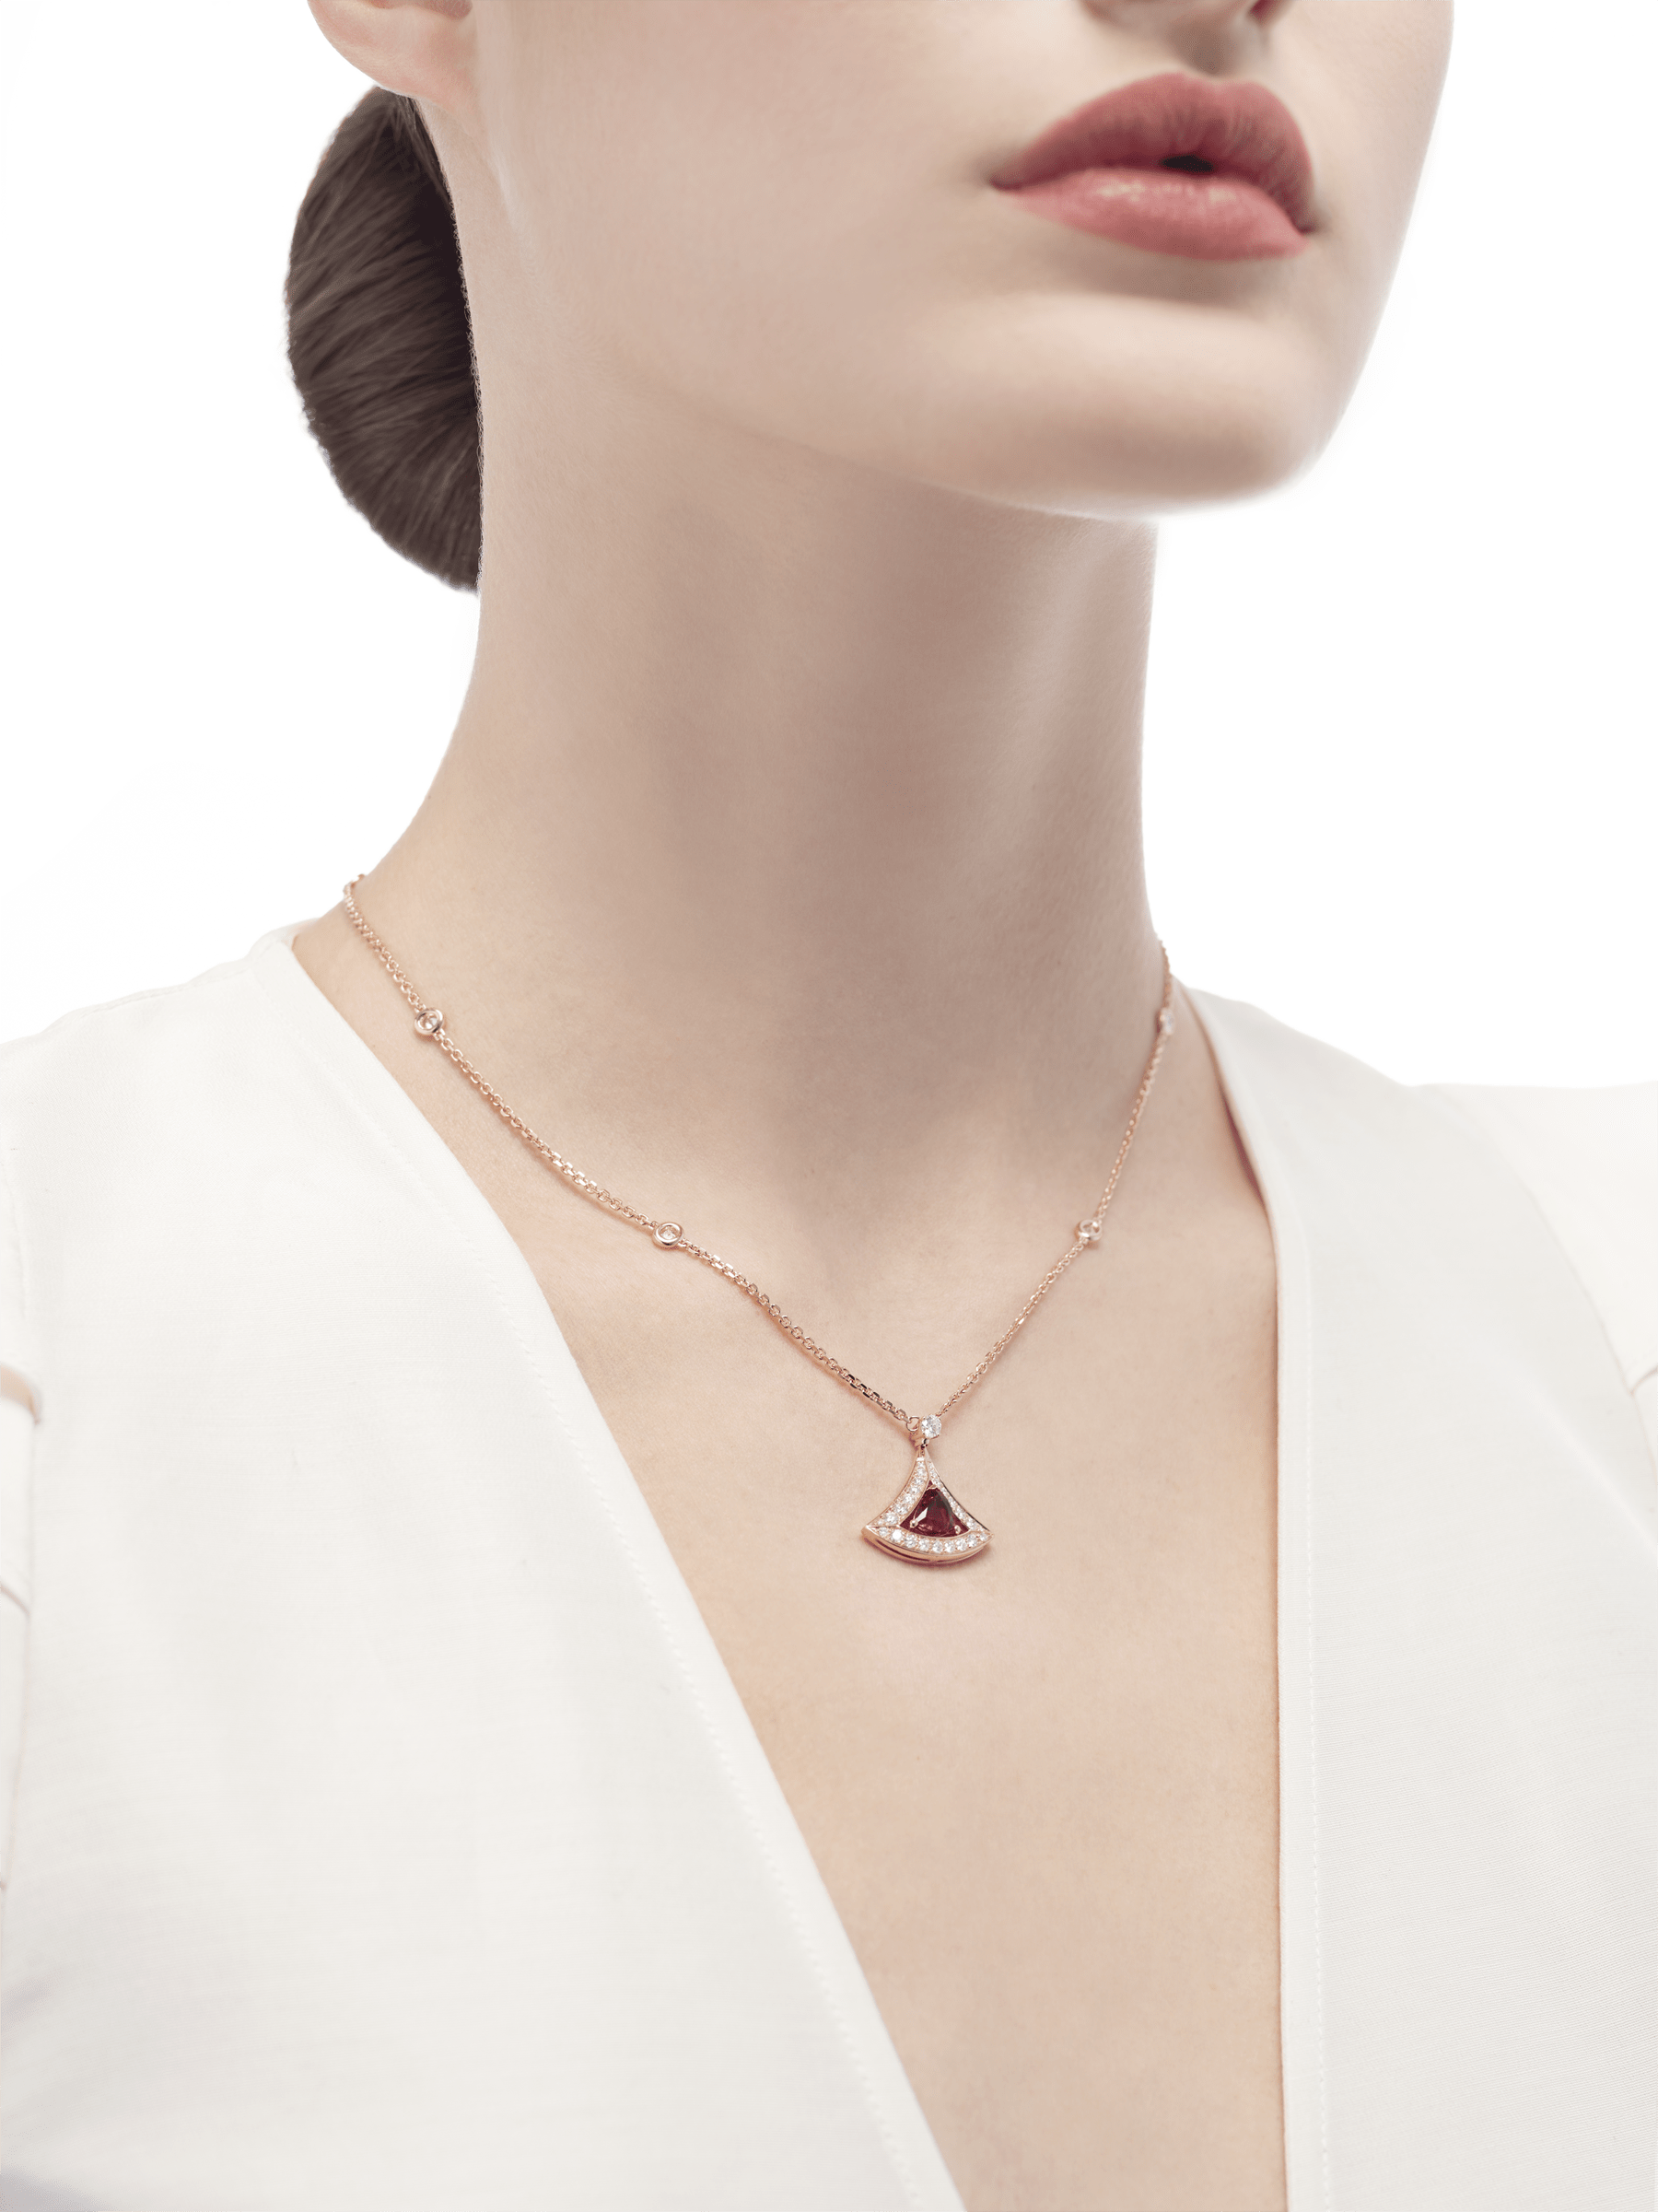 DIVAS' DREAM openwork necklace with 18 kt rose gold chain set with diamonds and 18 kt rose gold pendant with a pink tourmaline and set with pavé diamonds. 354366 image 4